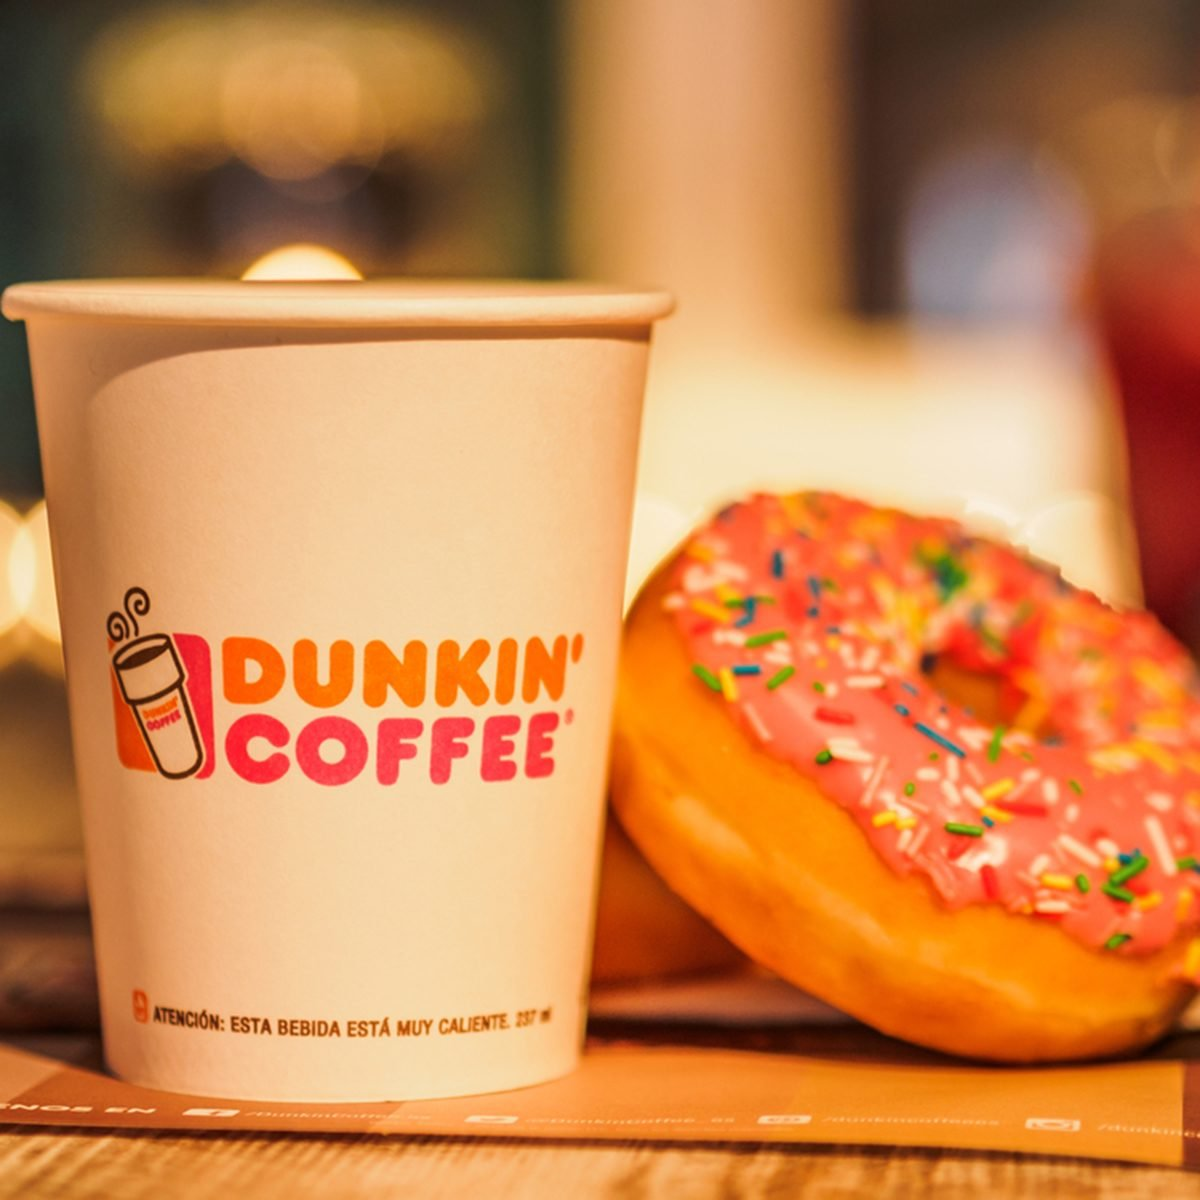 Dunkin Donuts coffee and donuts served